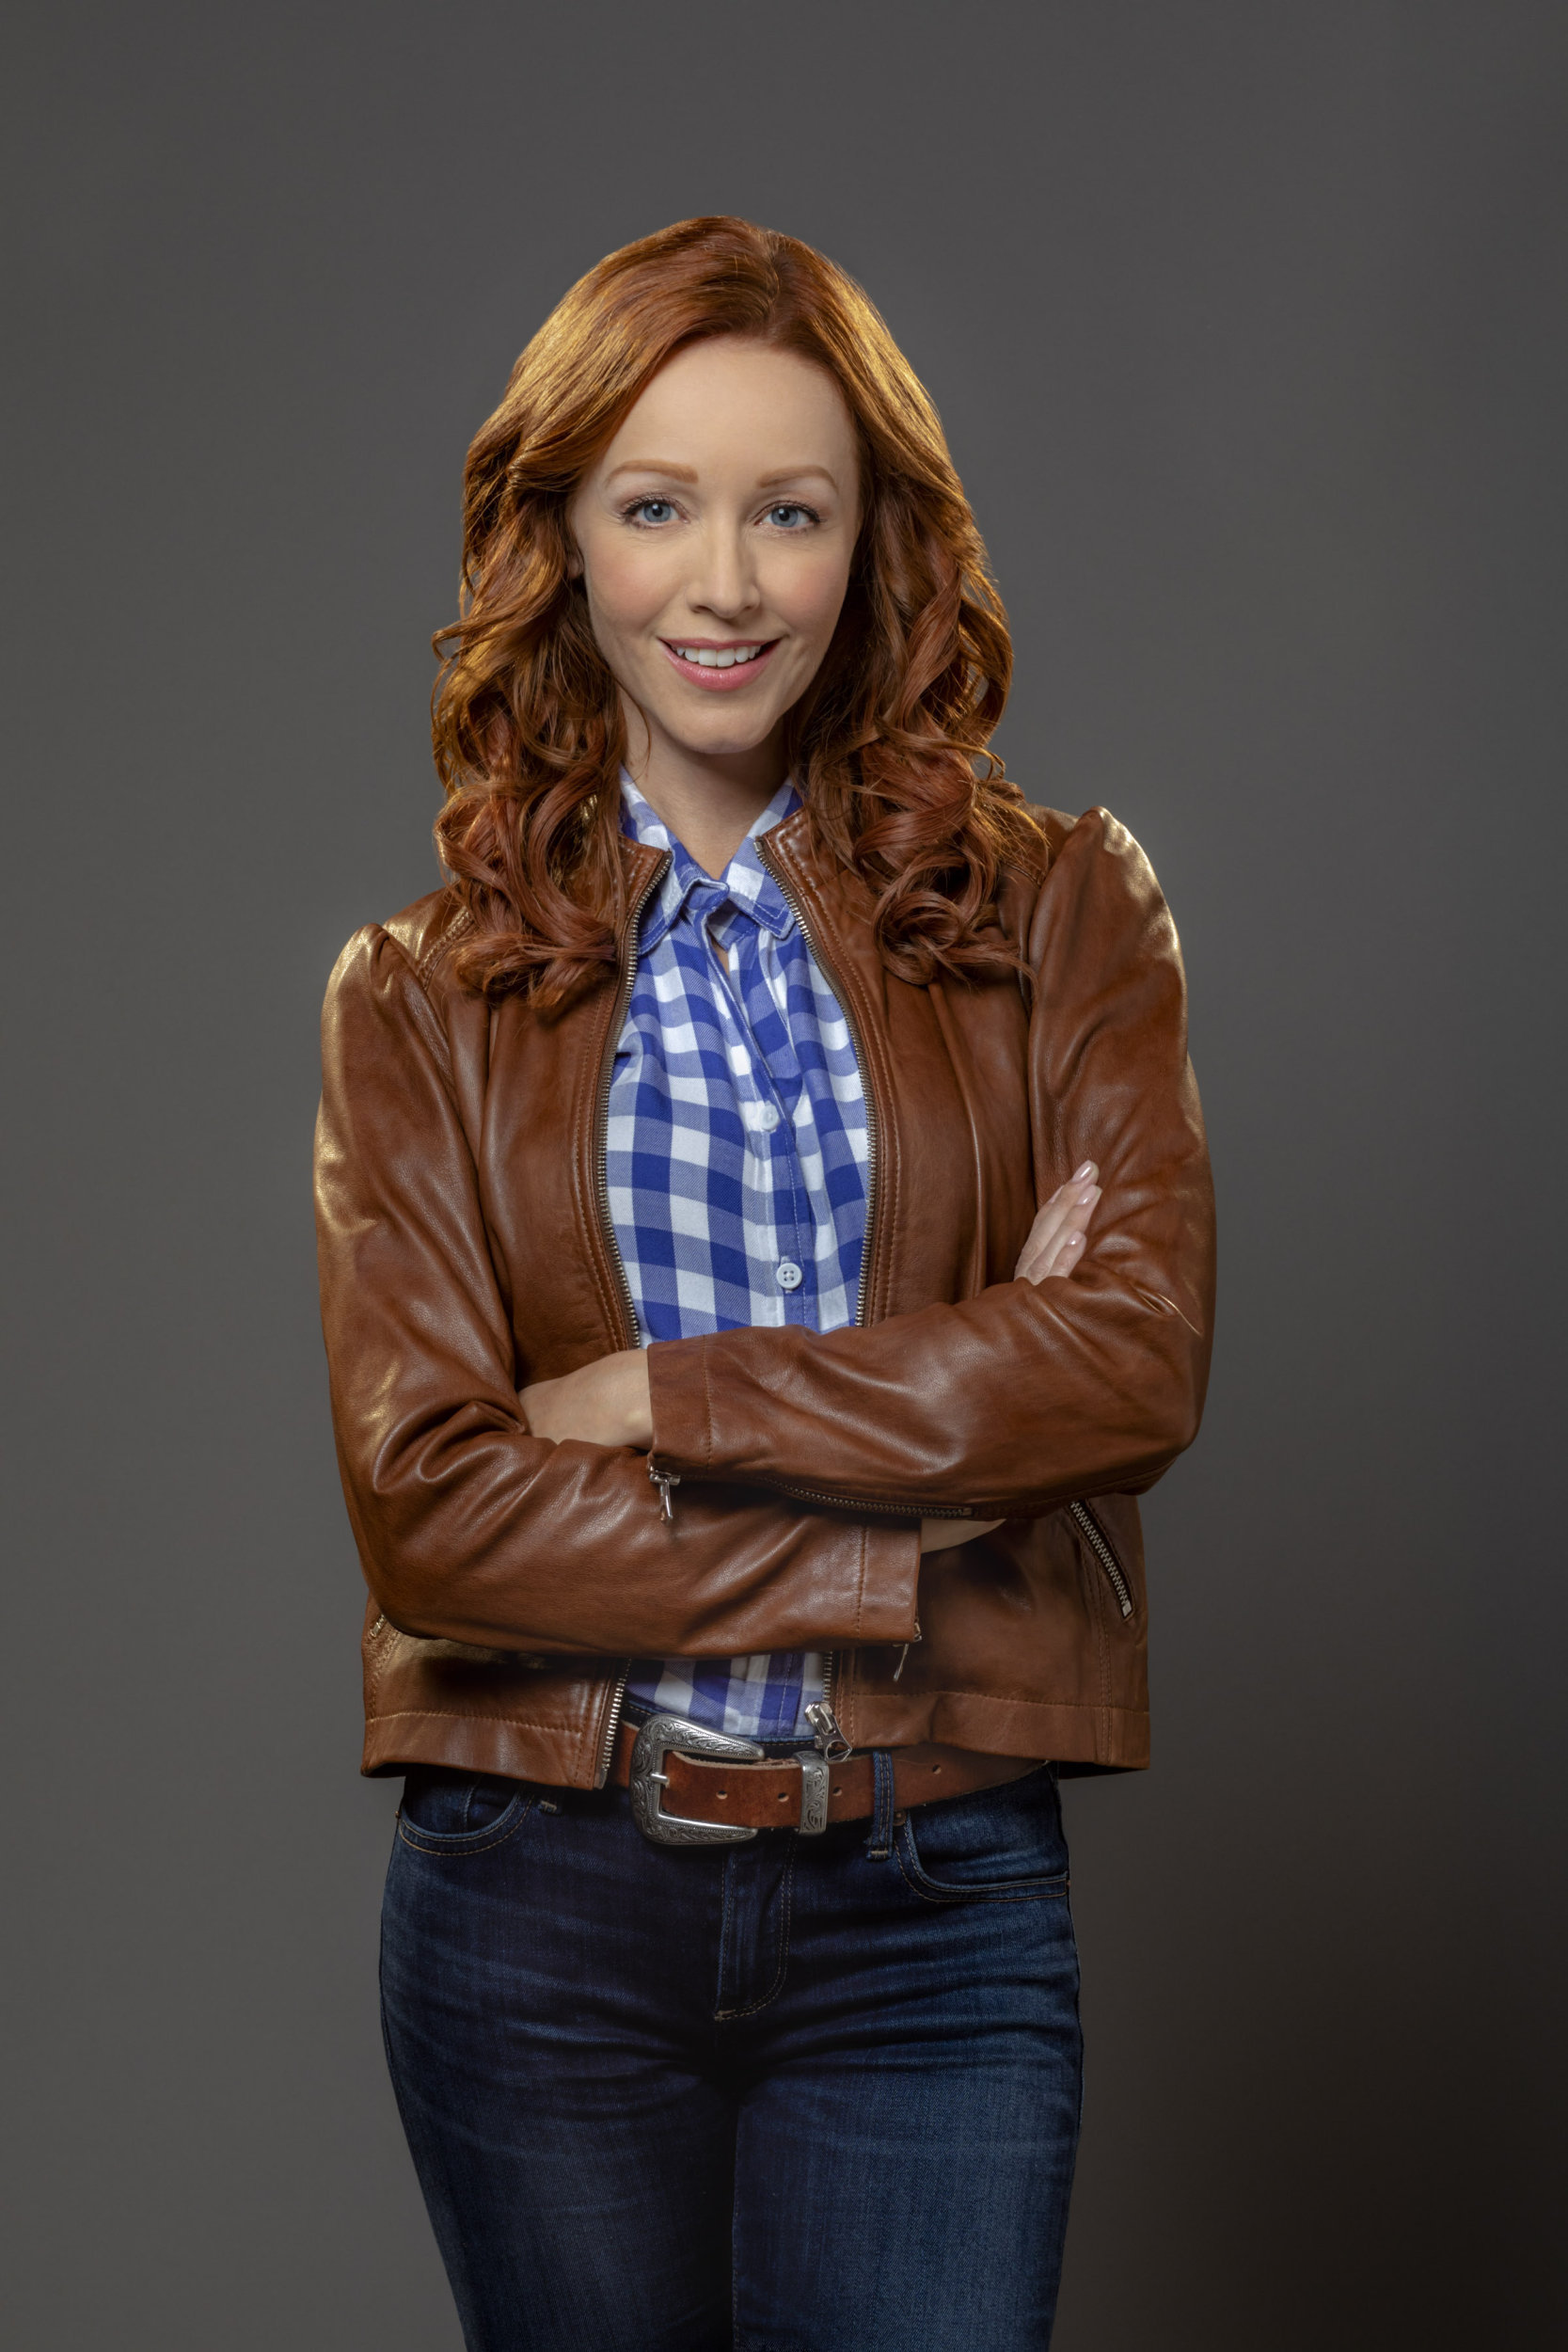 Lindy booth relic hunter